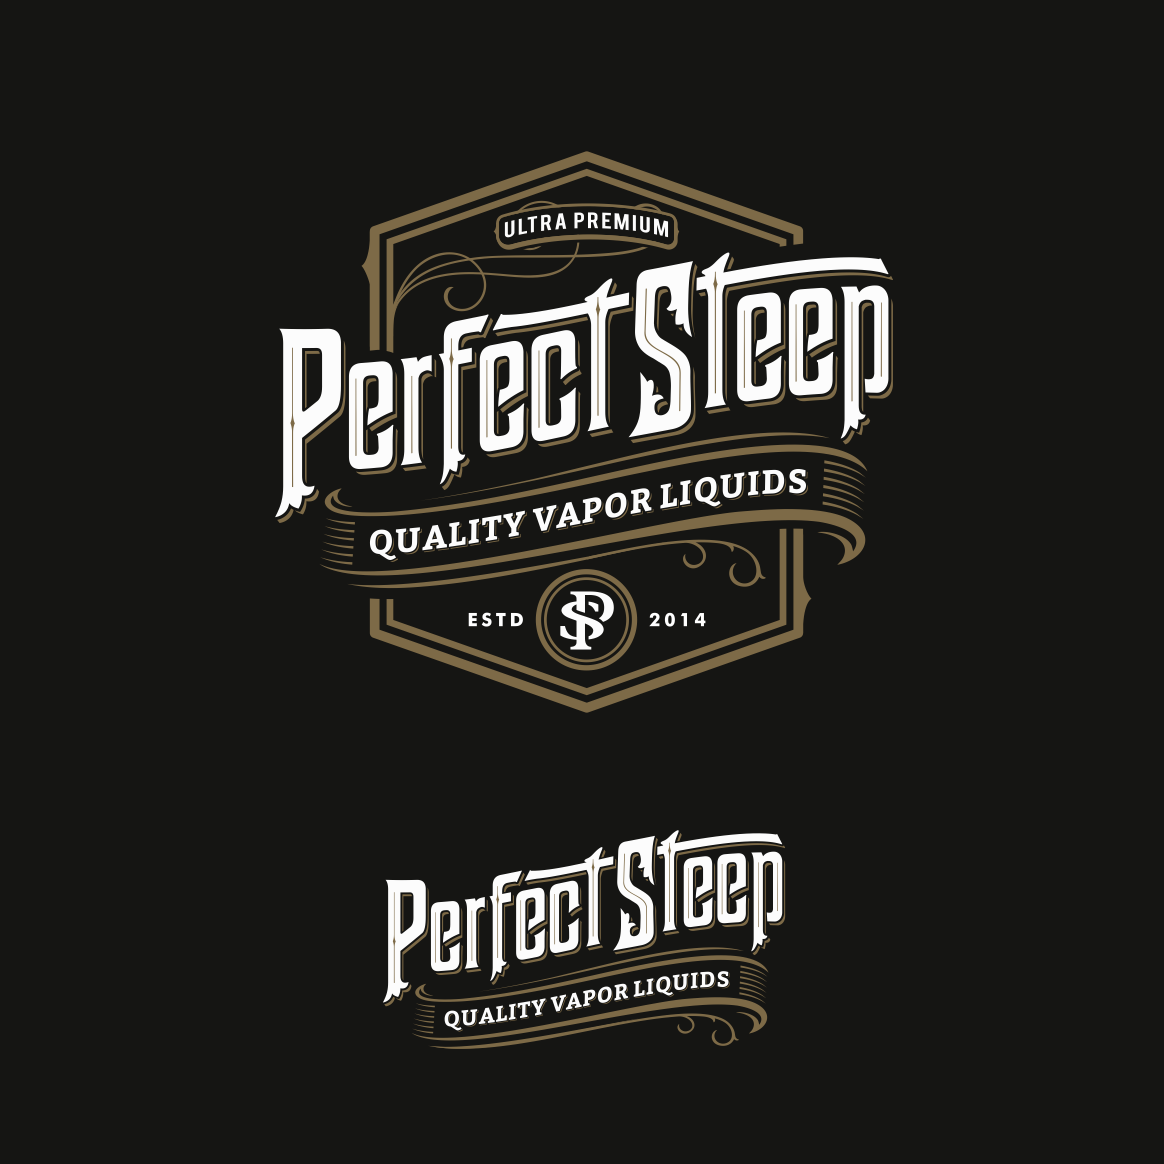 Perfect Steep eJuice logo design